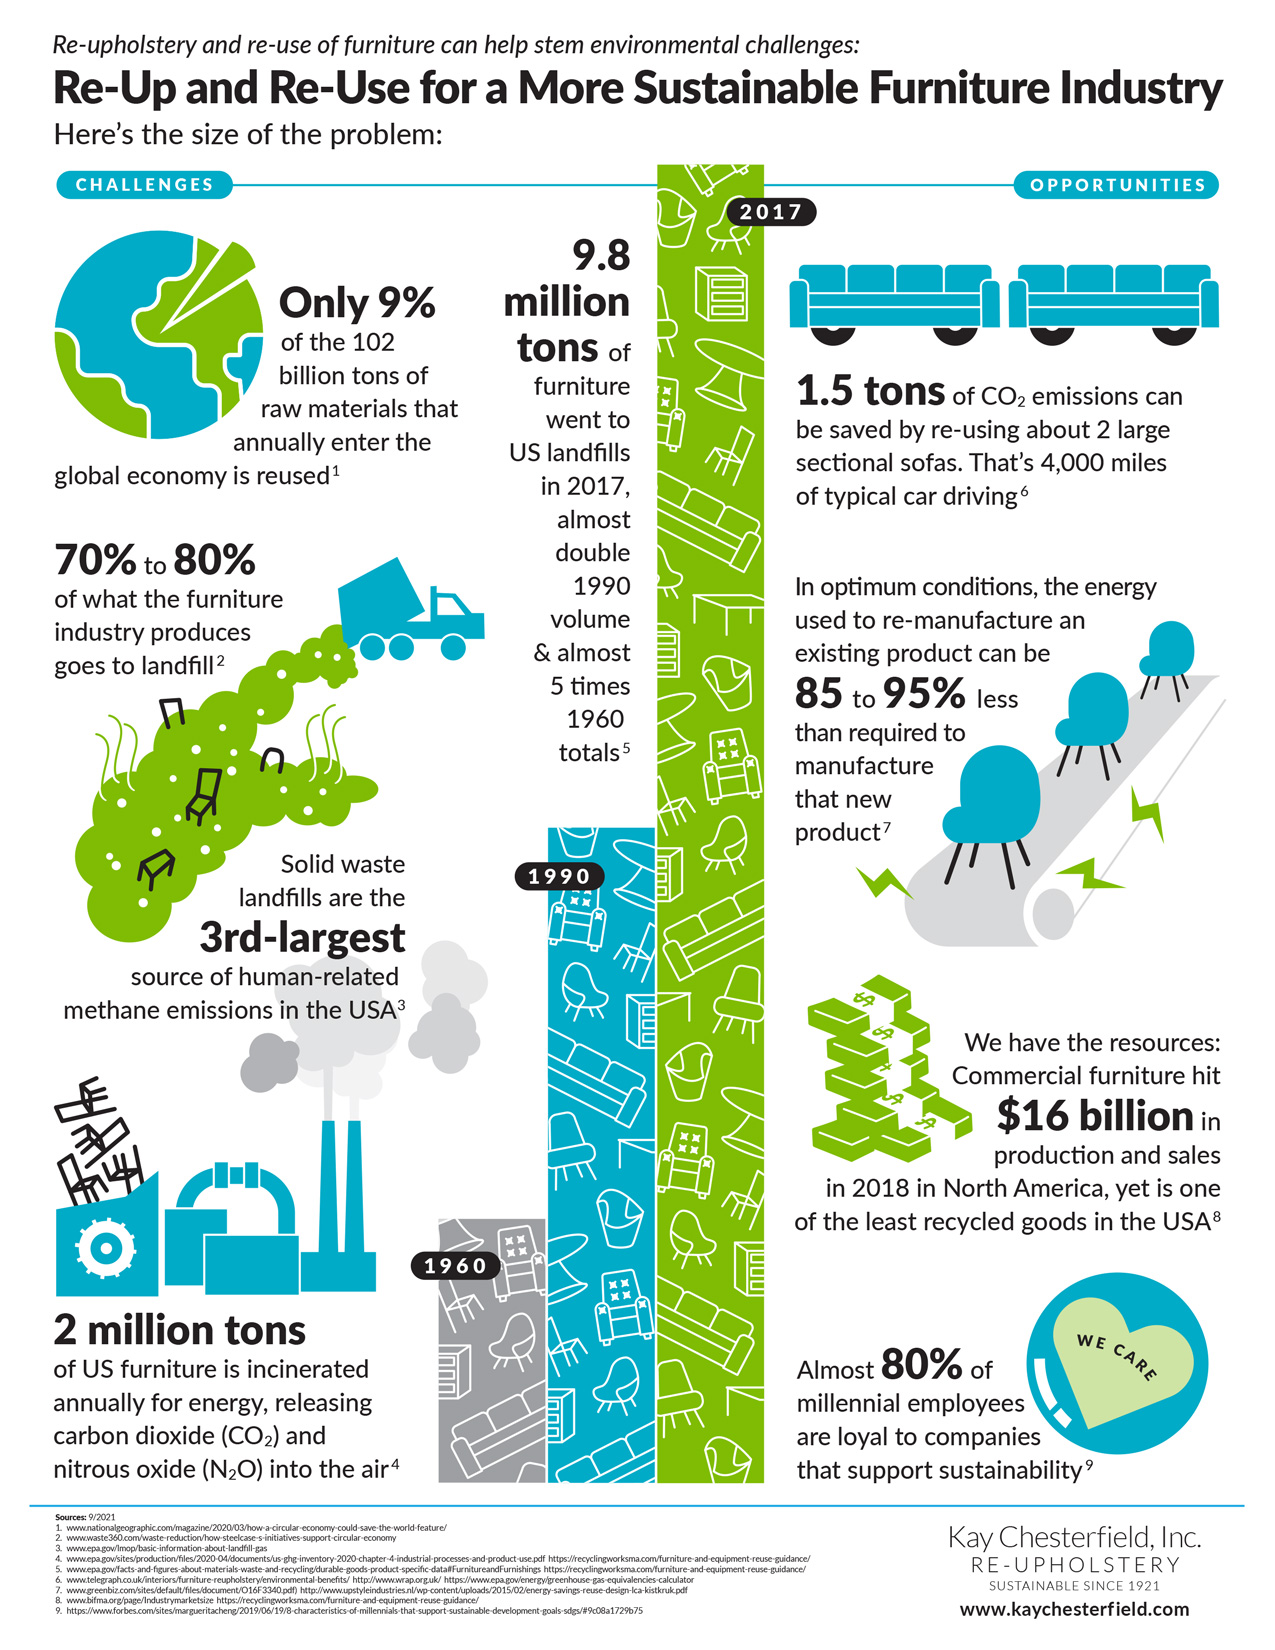 Kay Chesterfield Sustainability Infographic